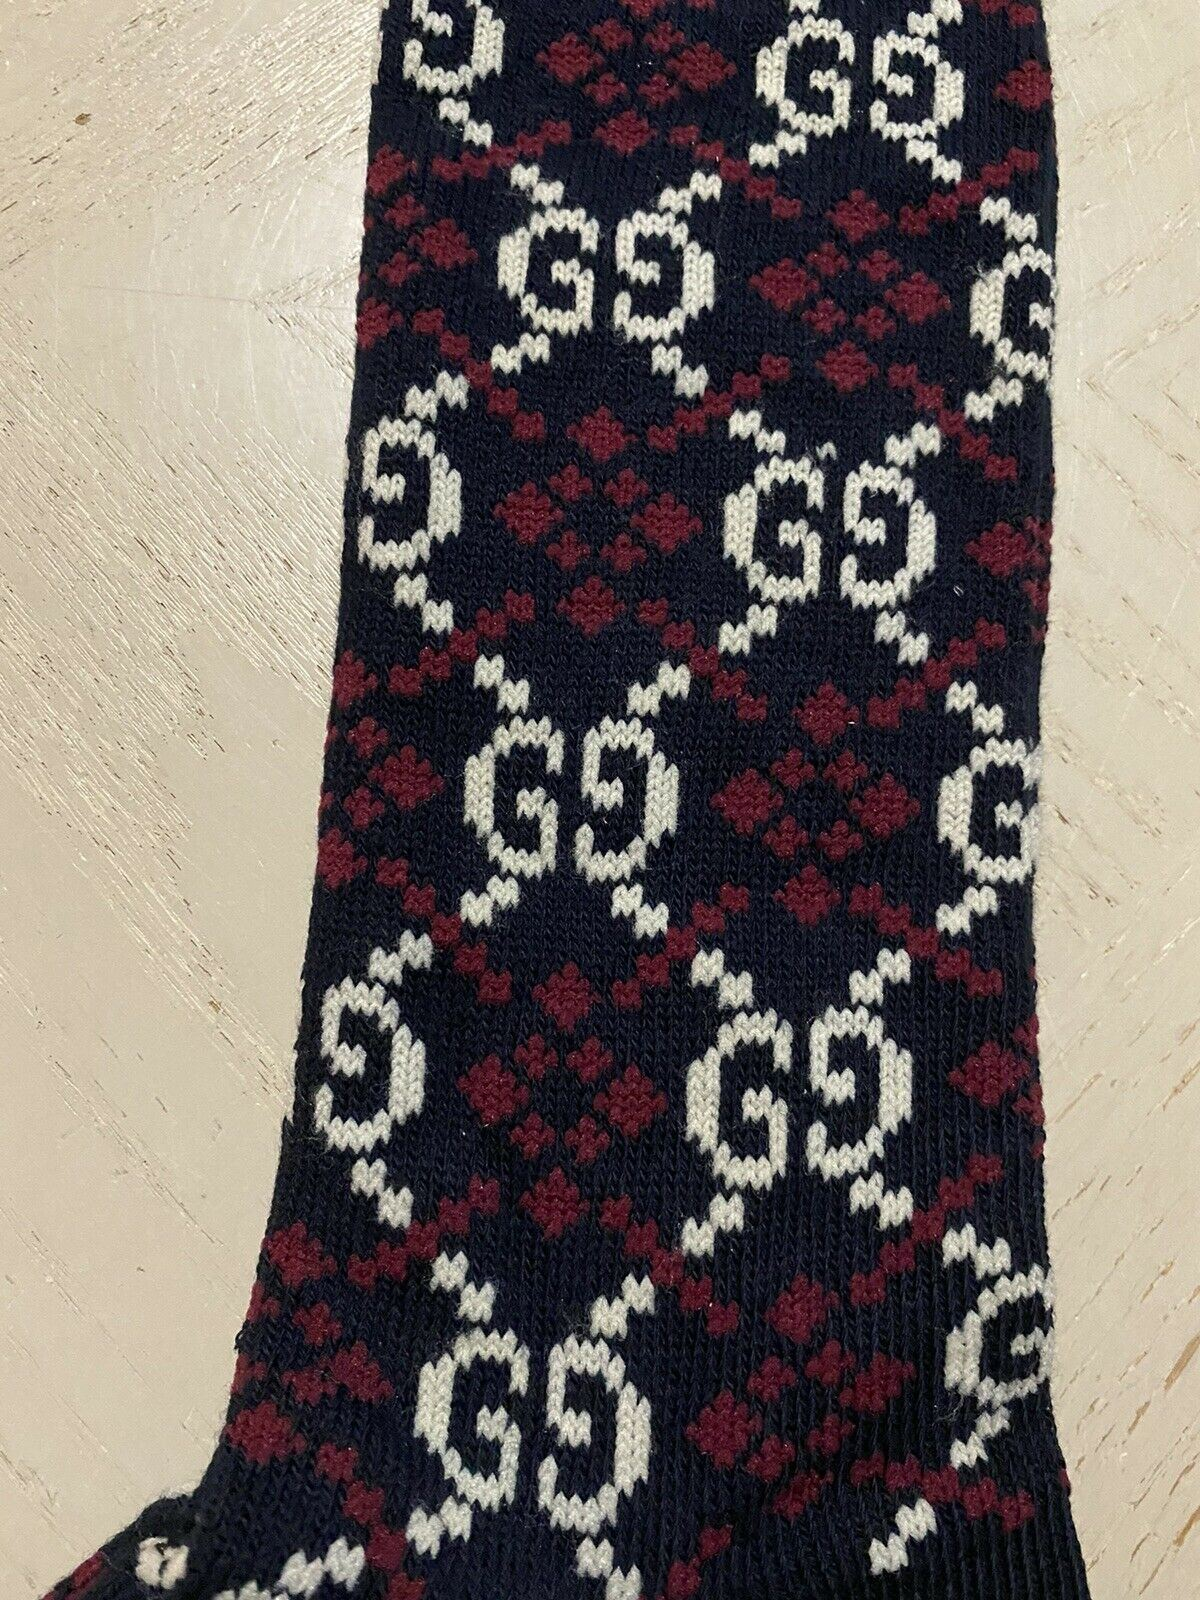 NWT Gucci Knee-high Socks GG Logo Navy/White/Red Size M Italy